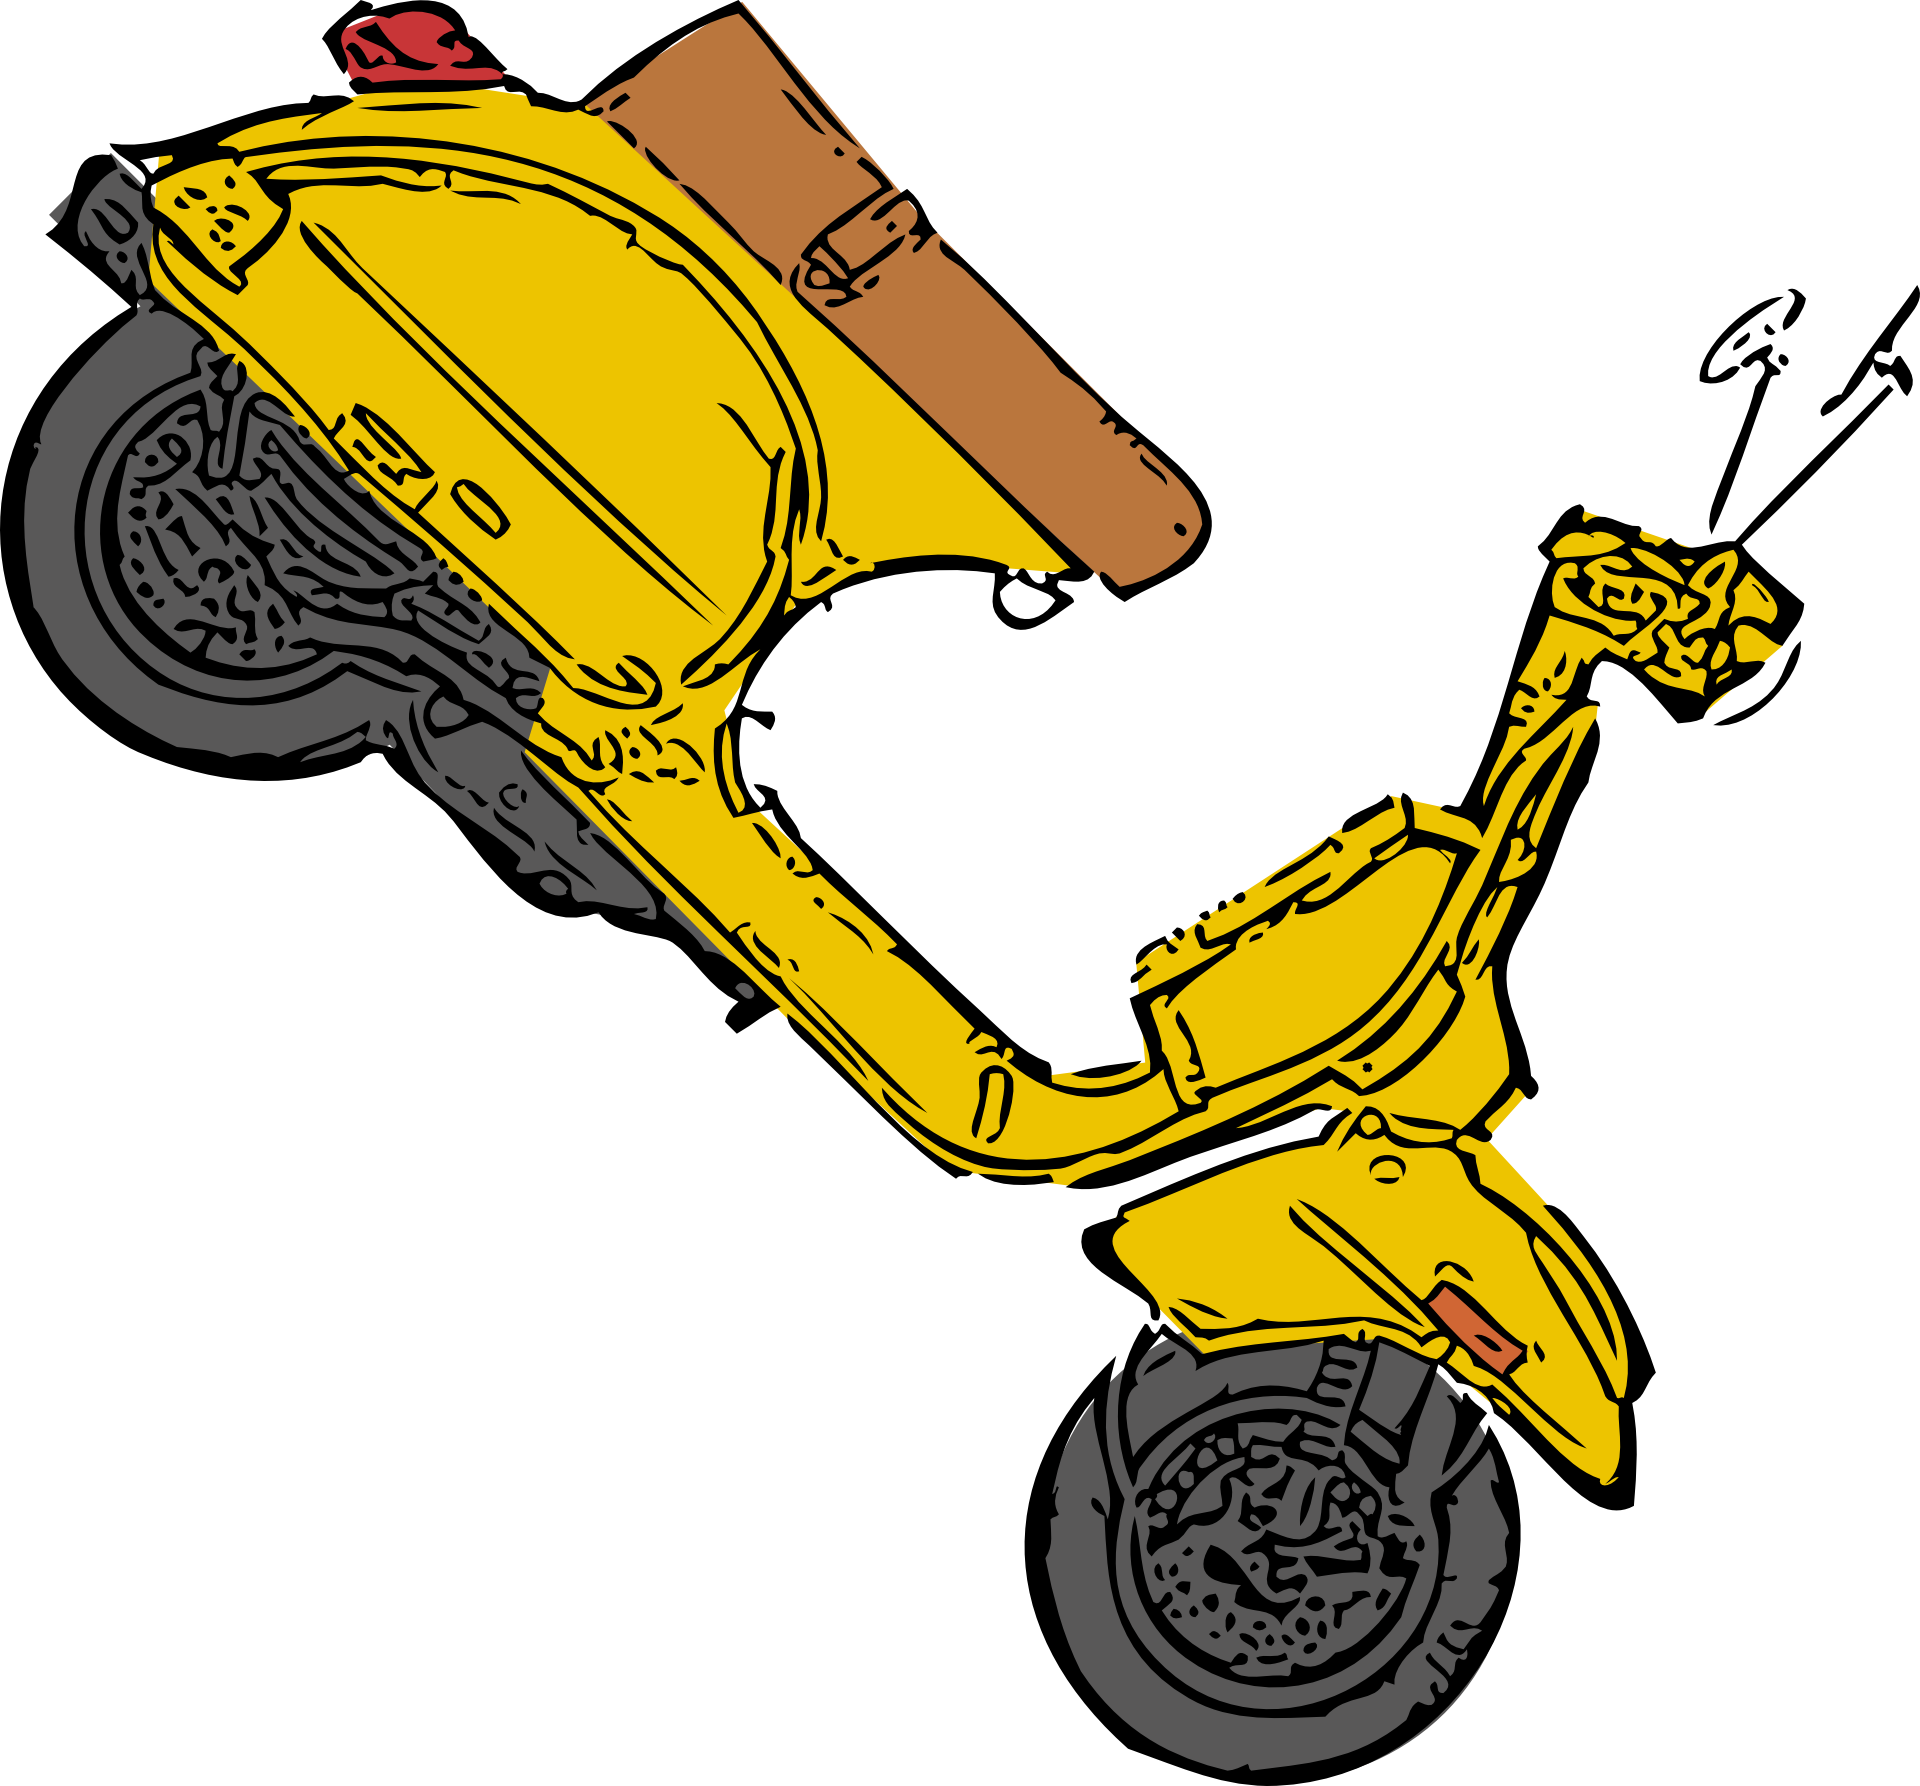 Yellow Vintage Scooter Illustration Free Image